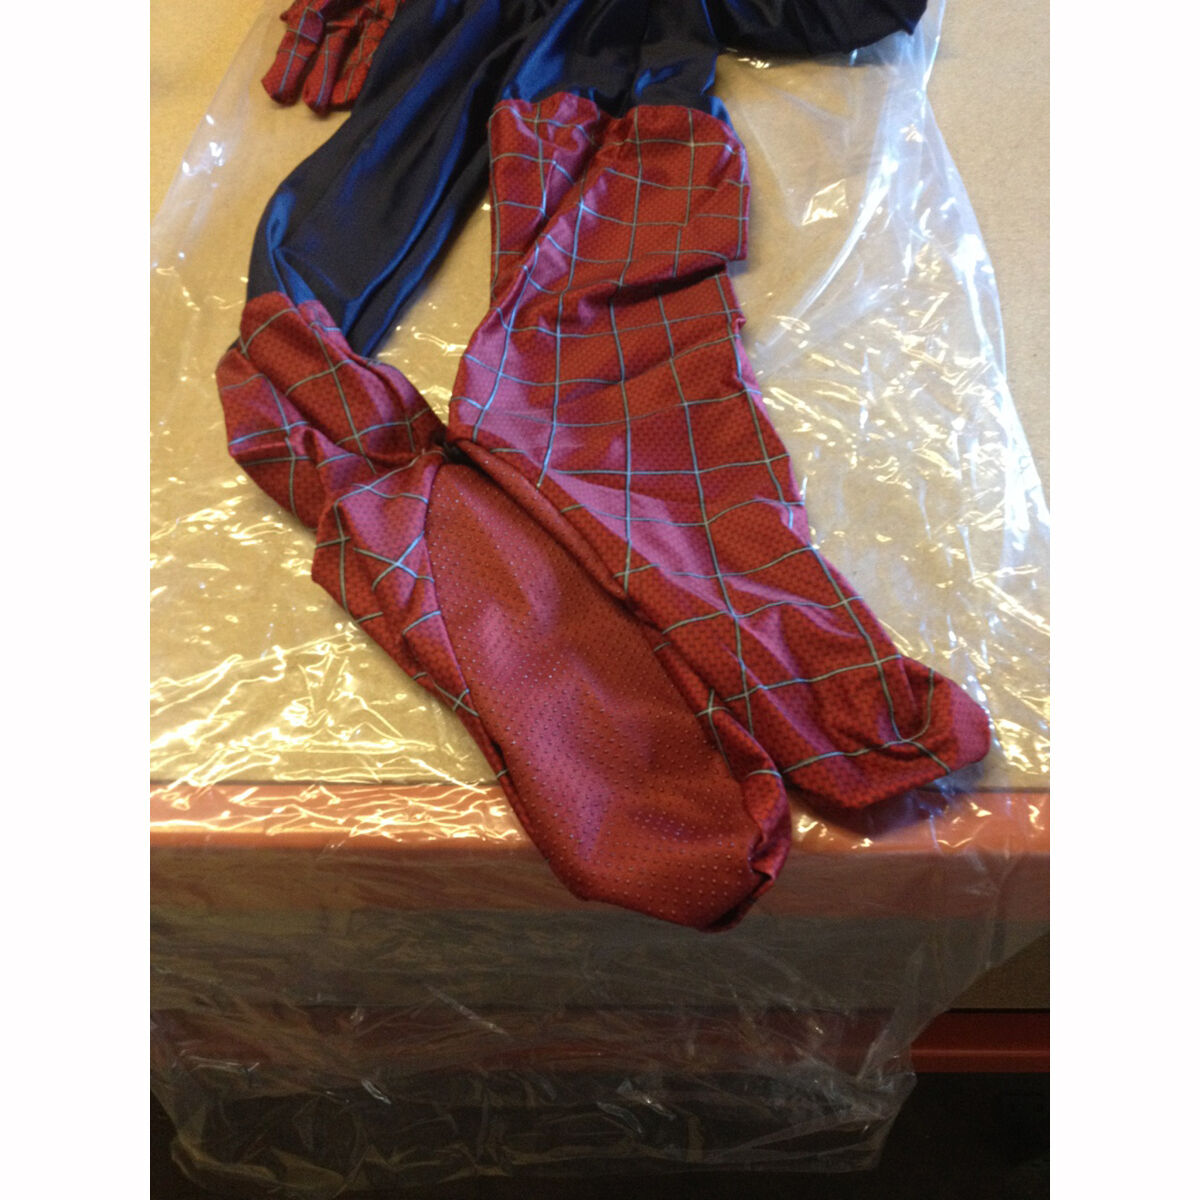 The Amazing Spider-Man 2 Theatrical  Adult Teen Costume Disguise 73061